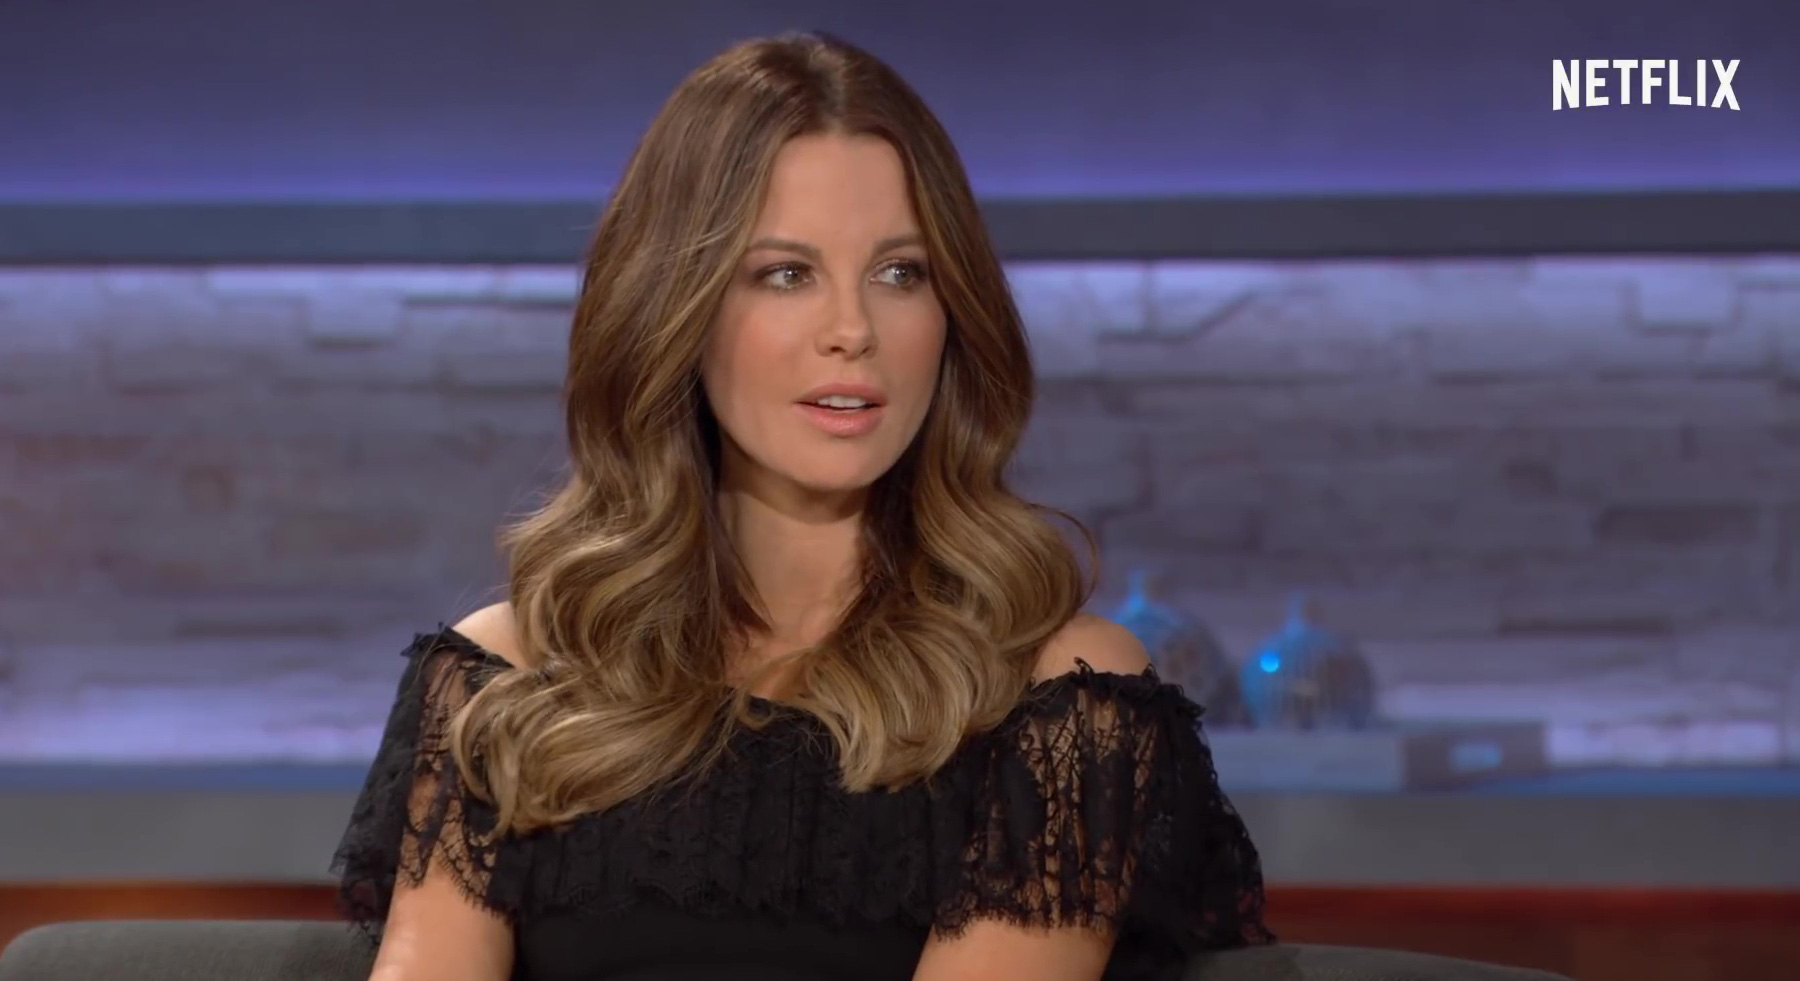 Chelsea: Kate Beckinsale Shares Her Thoughts on Co-Parenting & Body Image